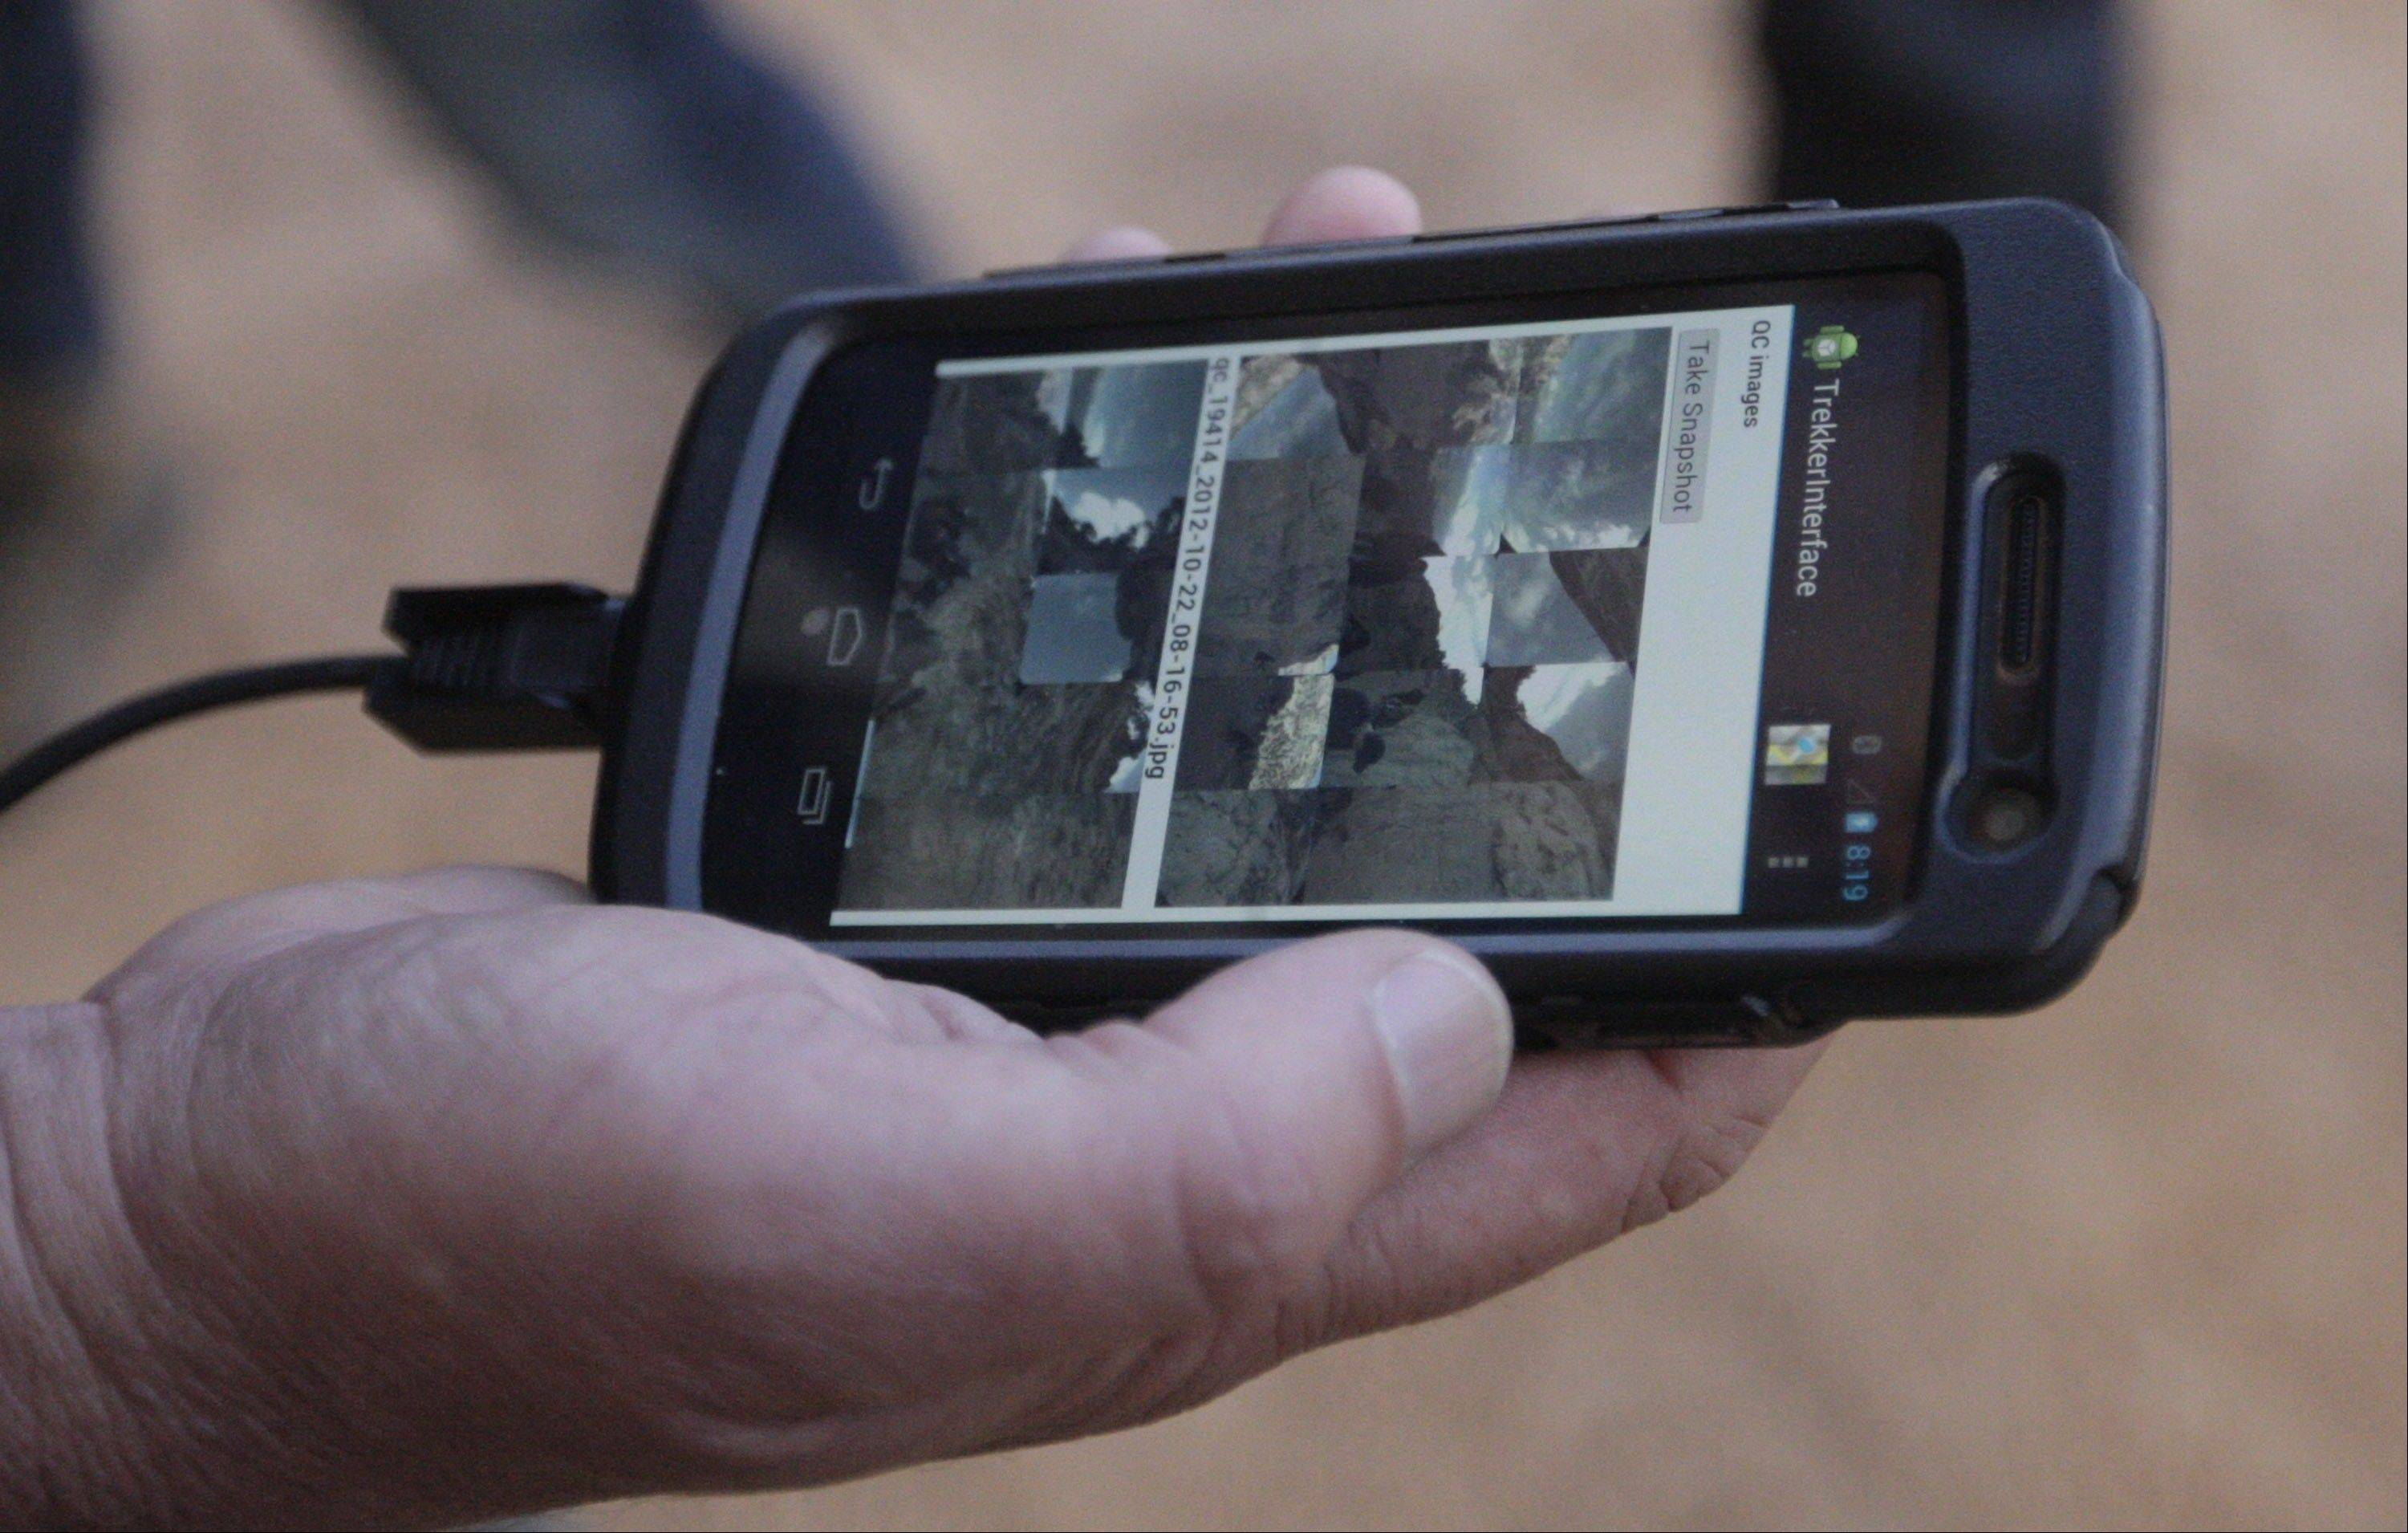 Low-resolution images of photos gathered by the Trekker are displayed on an Android phone.